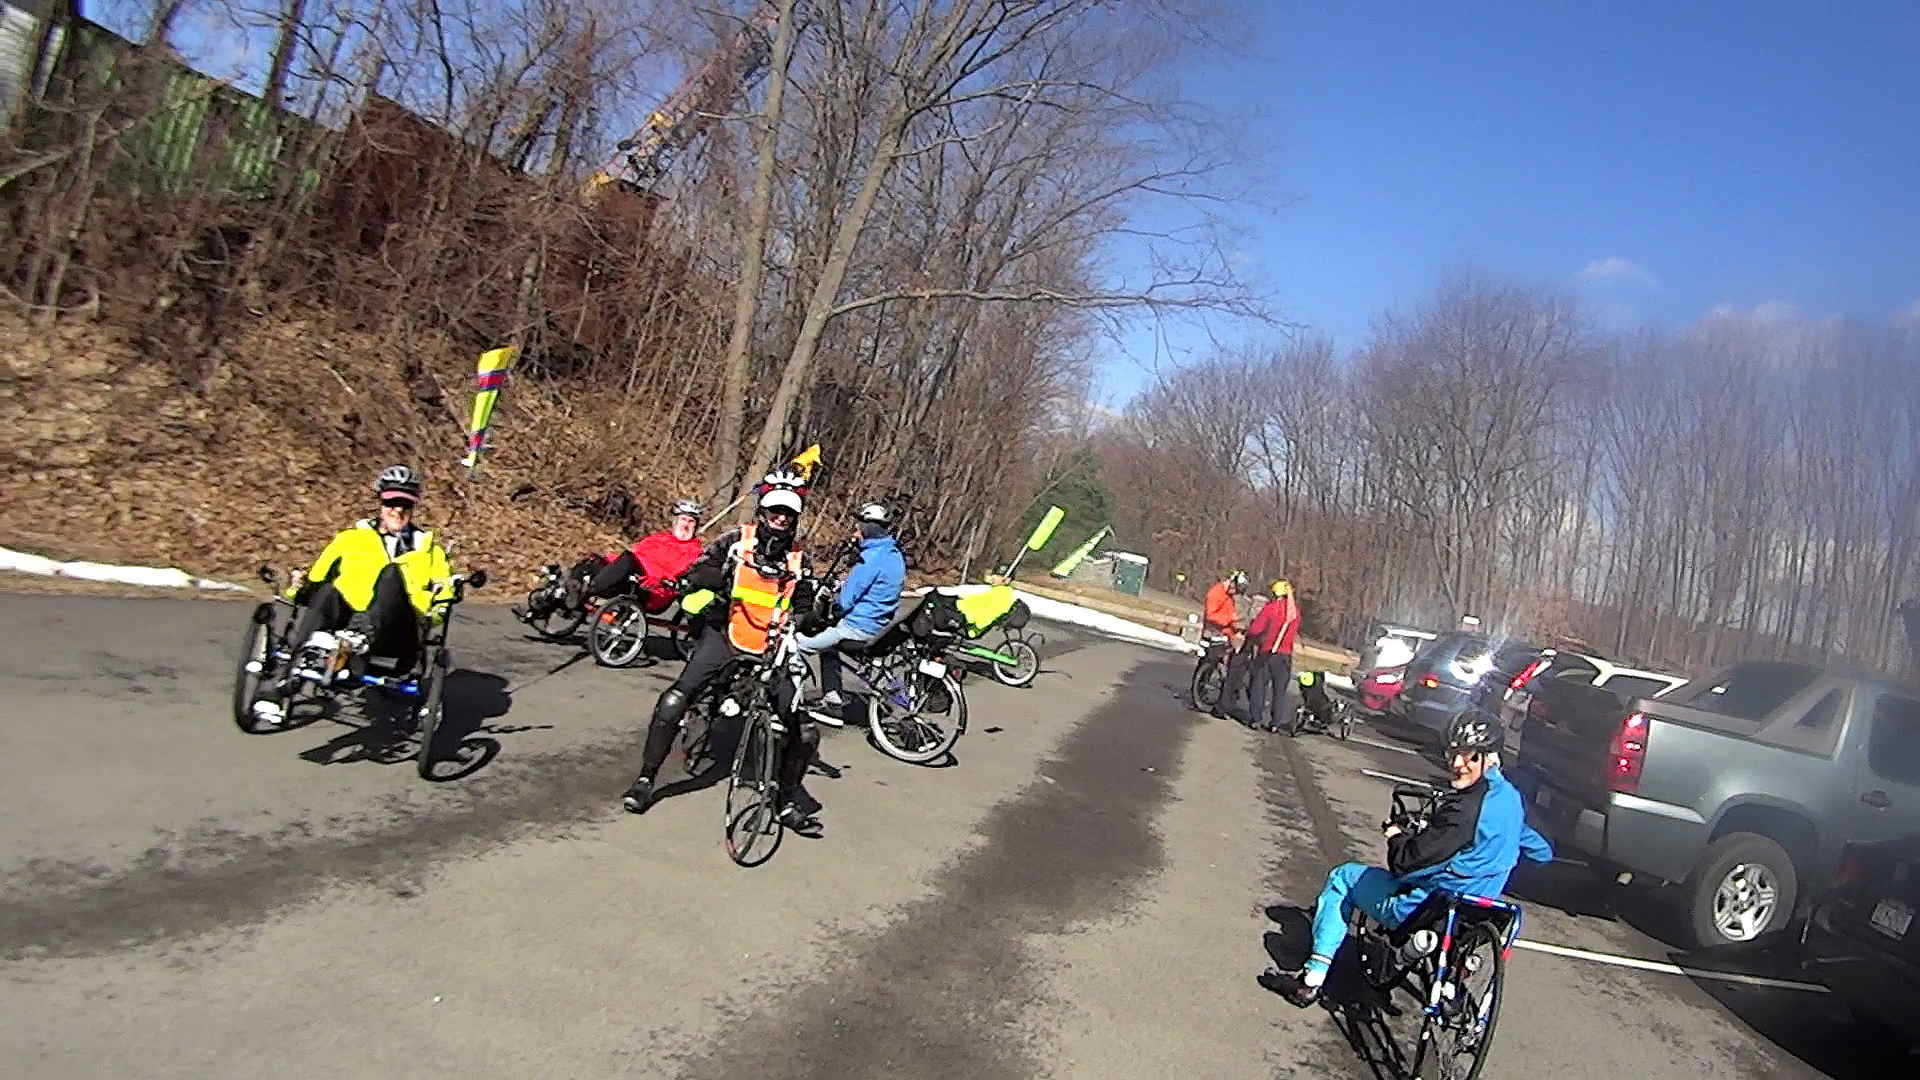 recumbent riders hopewell junction depot 2014 04 05 - Muster Depot